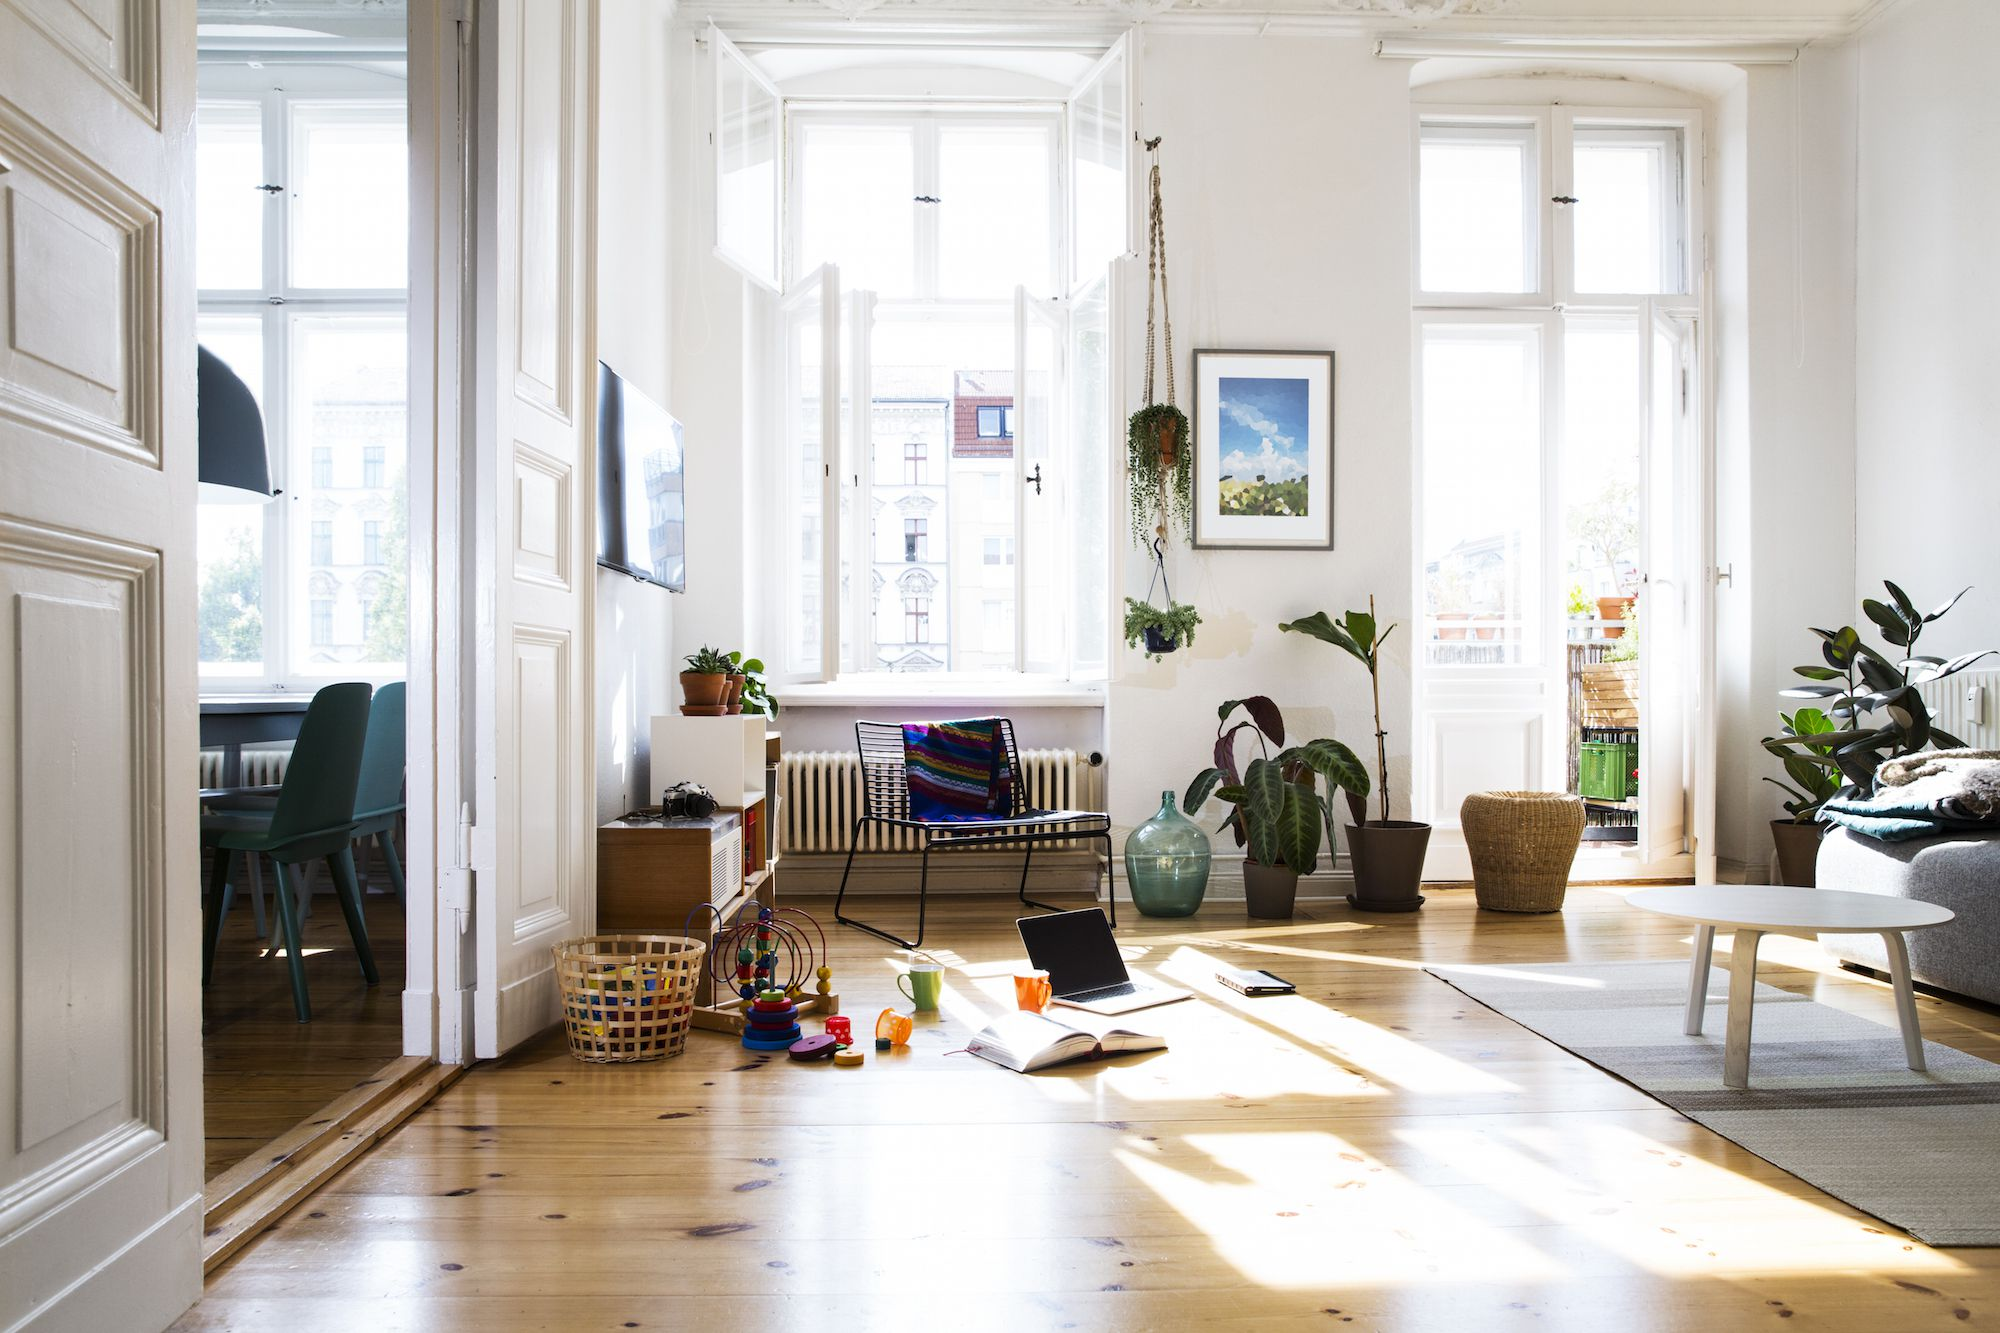 Living Room Vs Family Room - Difference Between Living Room And